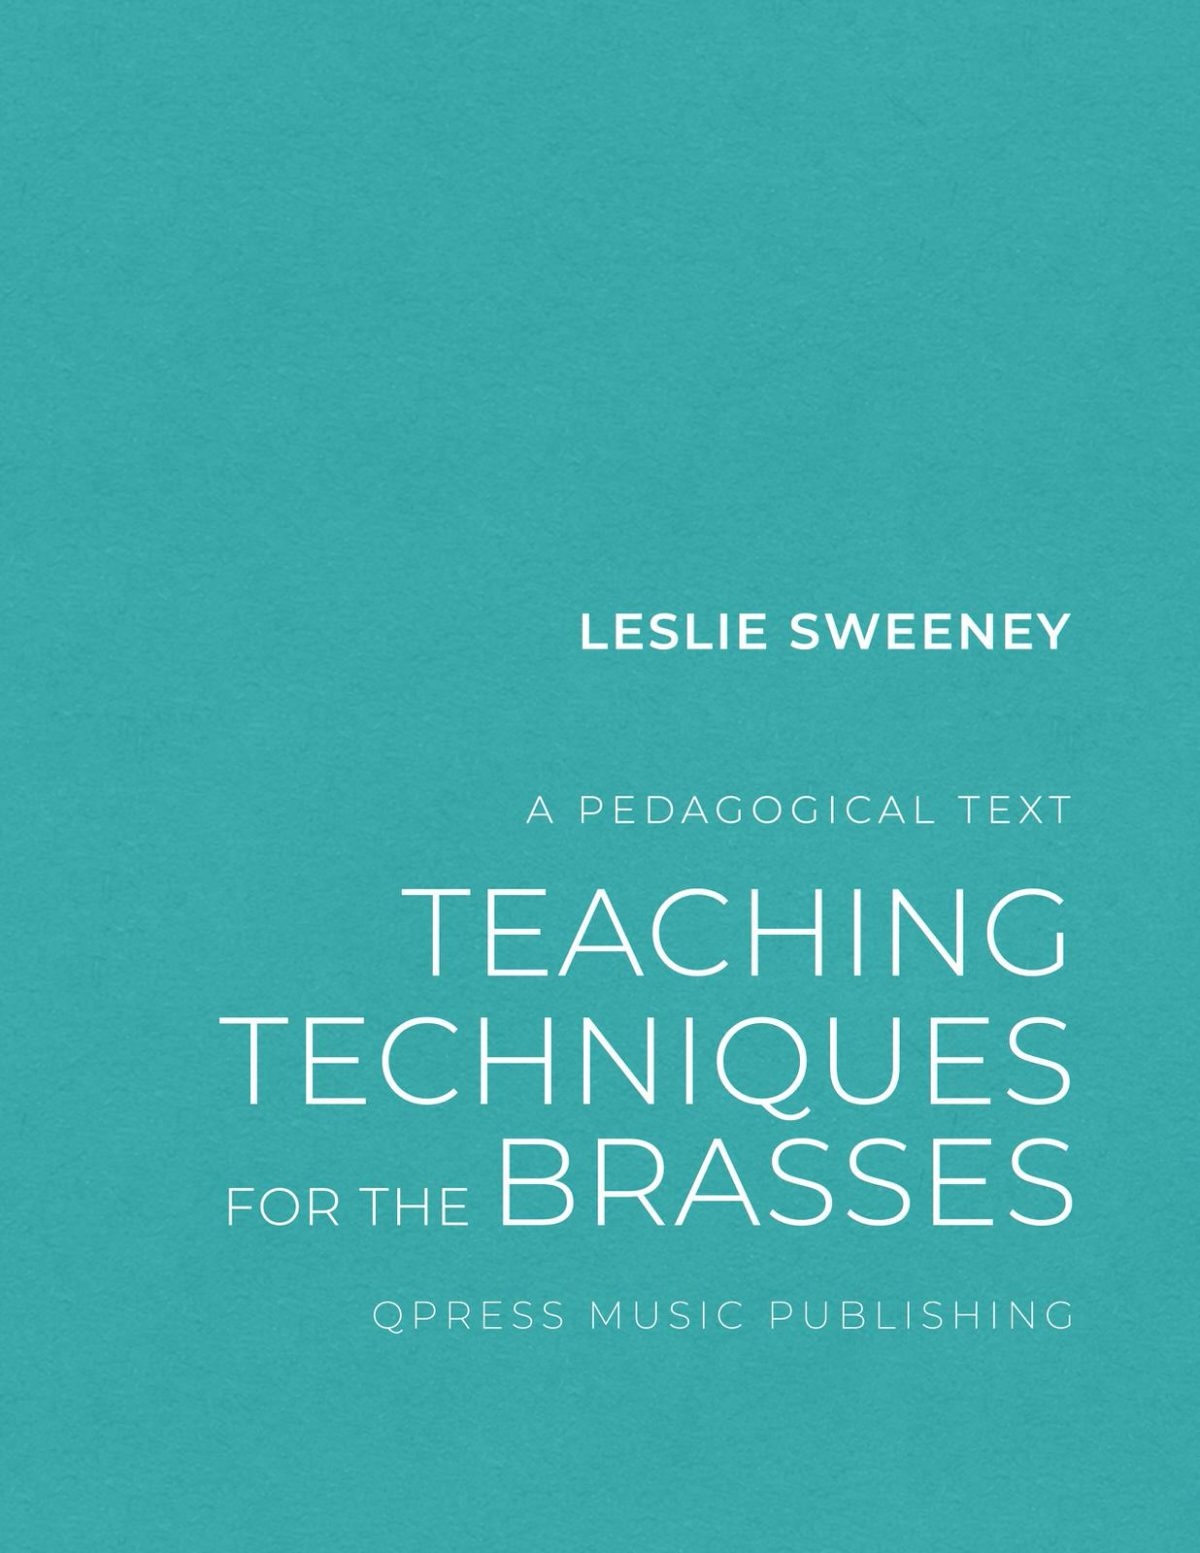 Sweeney, Teaching Techniques for The Brasses-p01